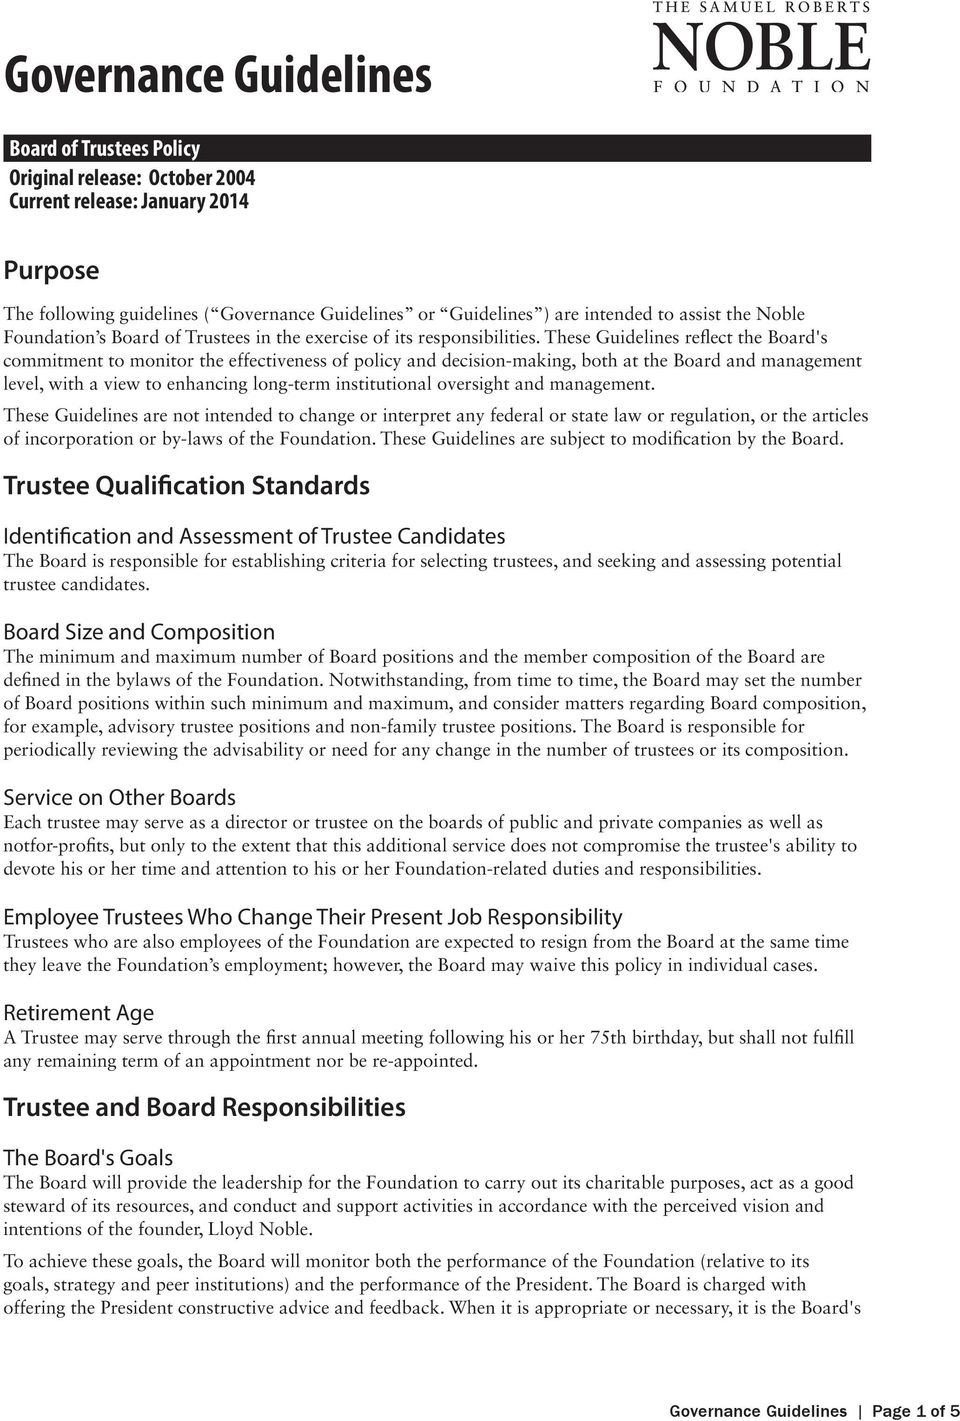 These Guidelines reflect the Board's commitment to monitor the effectiveness of policy and decision-making, both at the Board and management level, with a view to enhancing long-term institutional